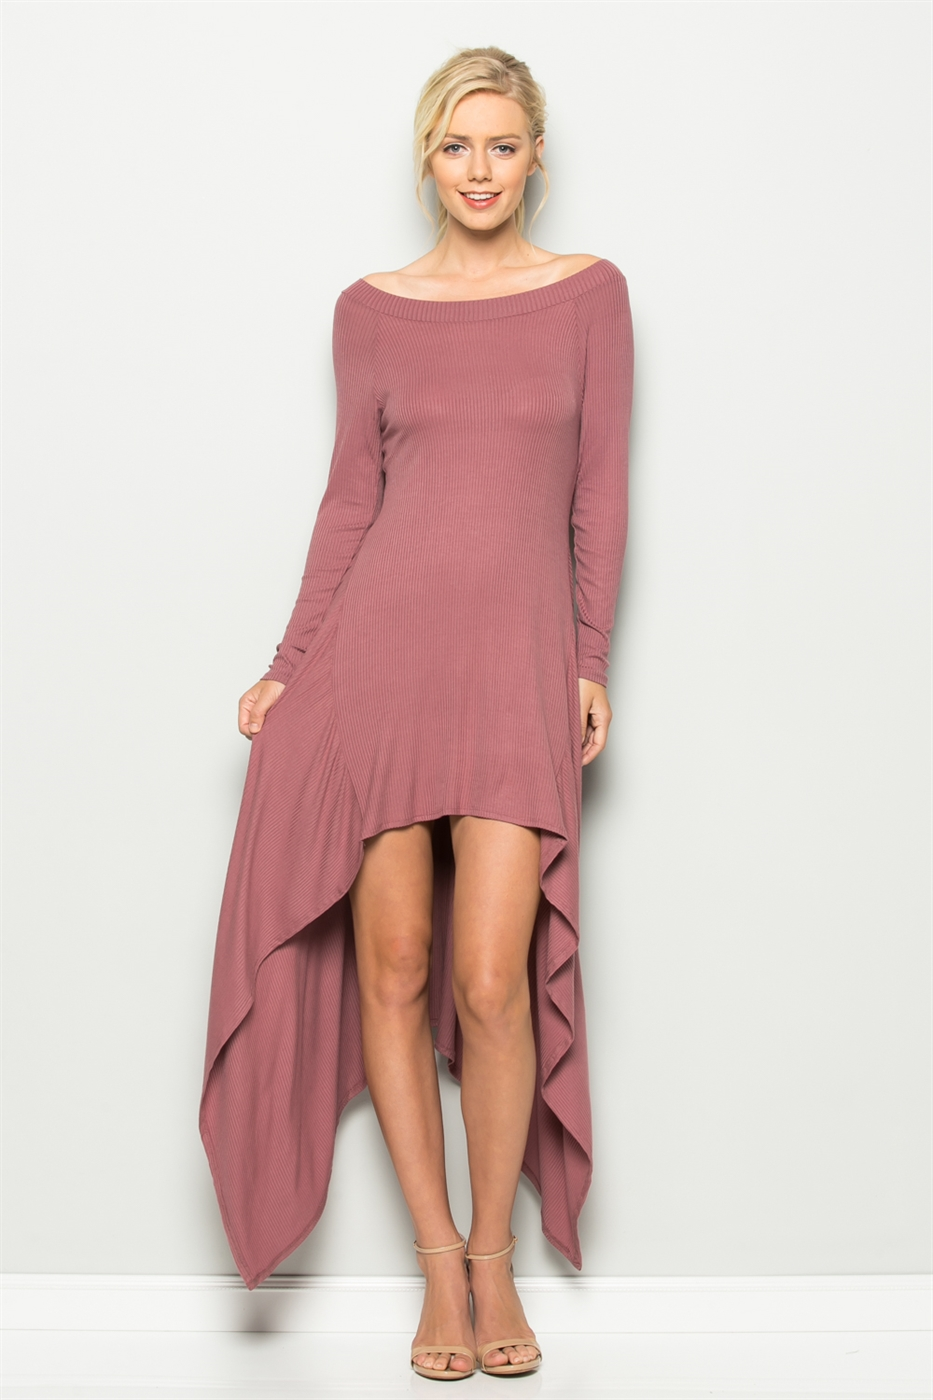 HANKY HEM RIB DRESS - orangeshine.com